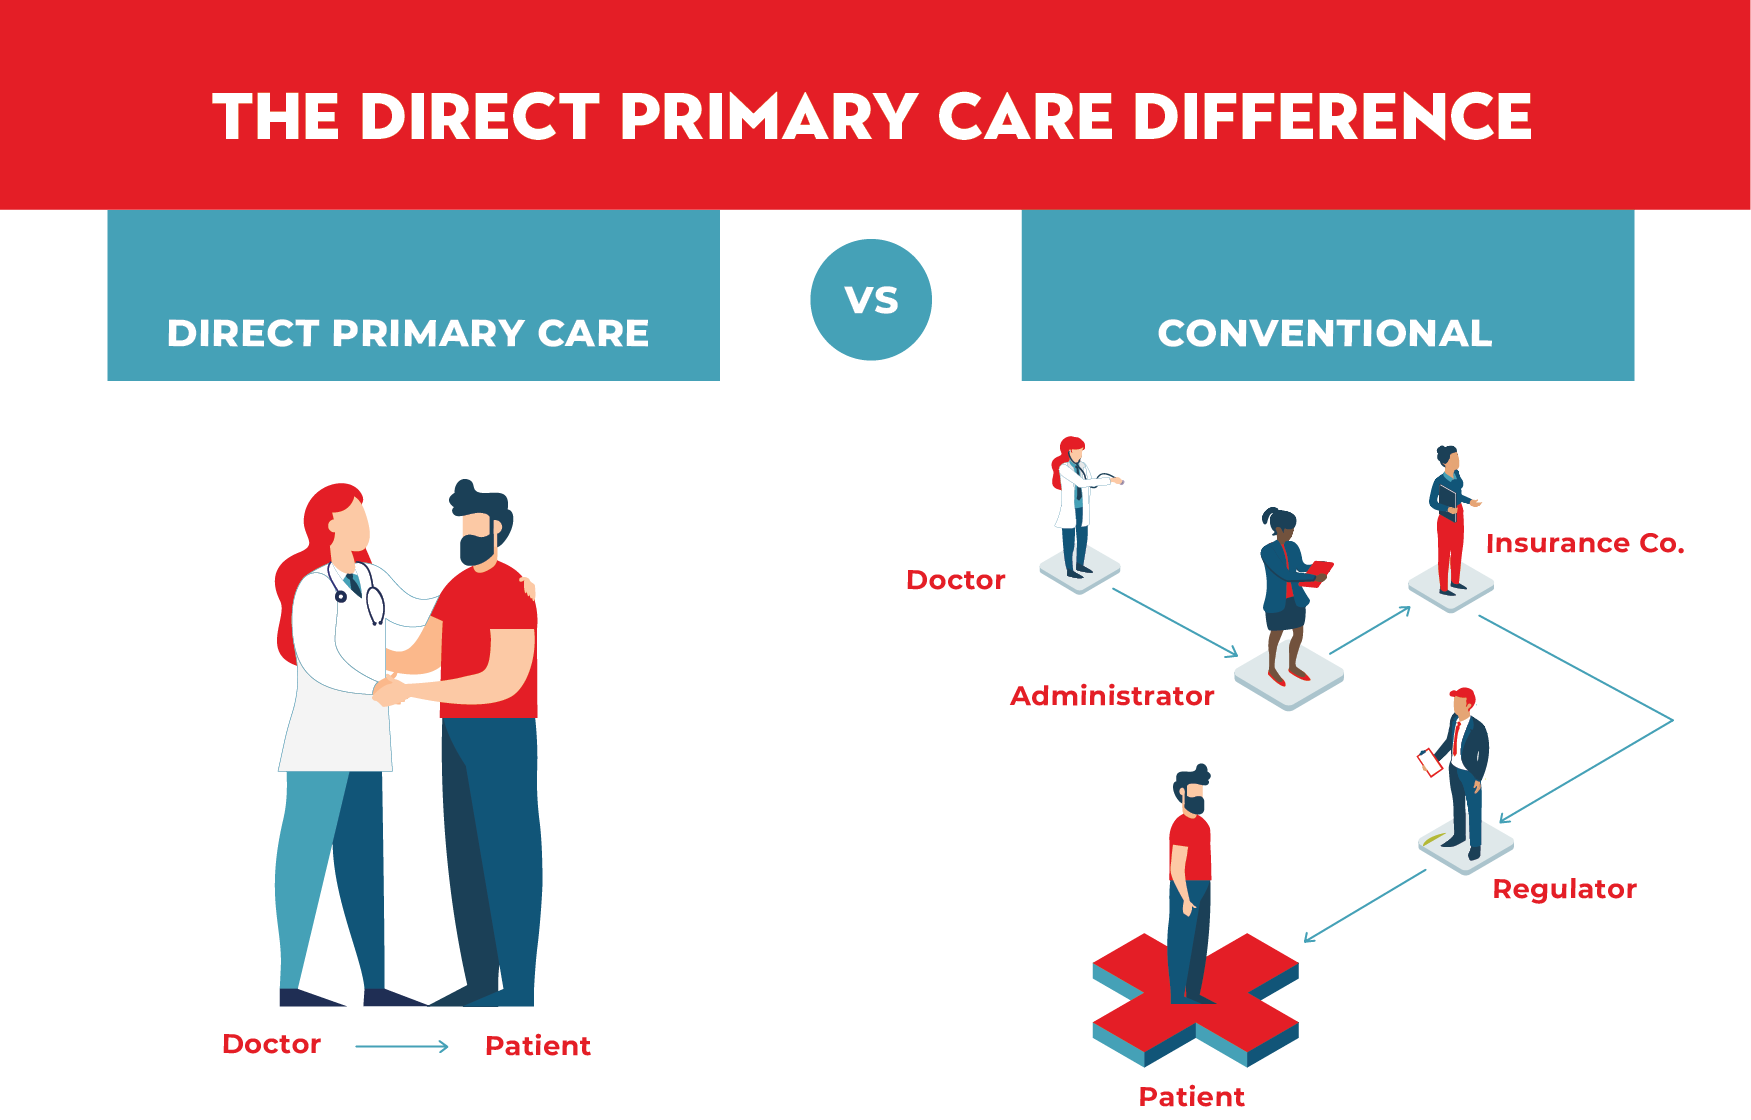 The Direct Primary Care Difference